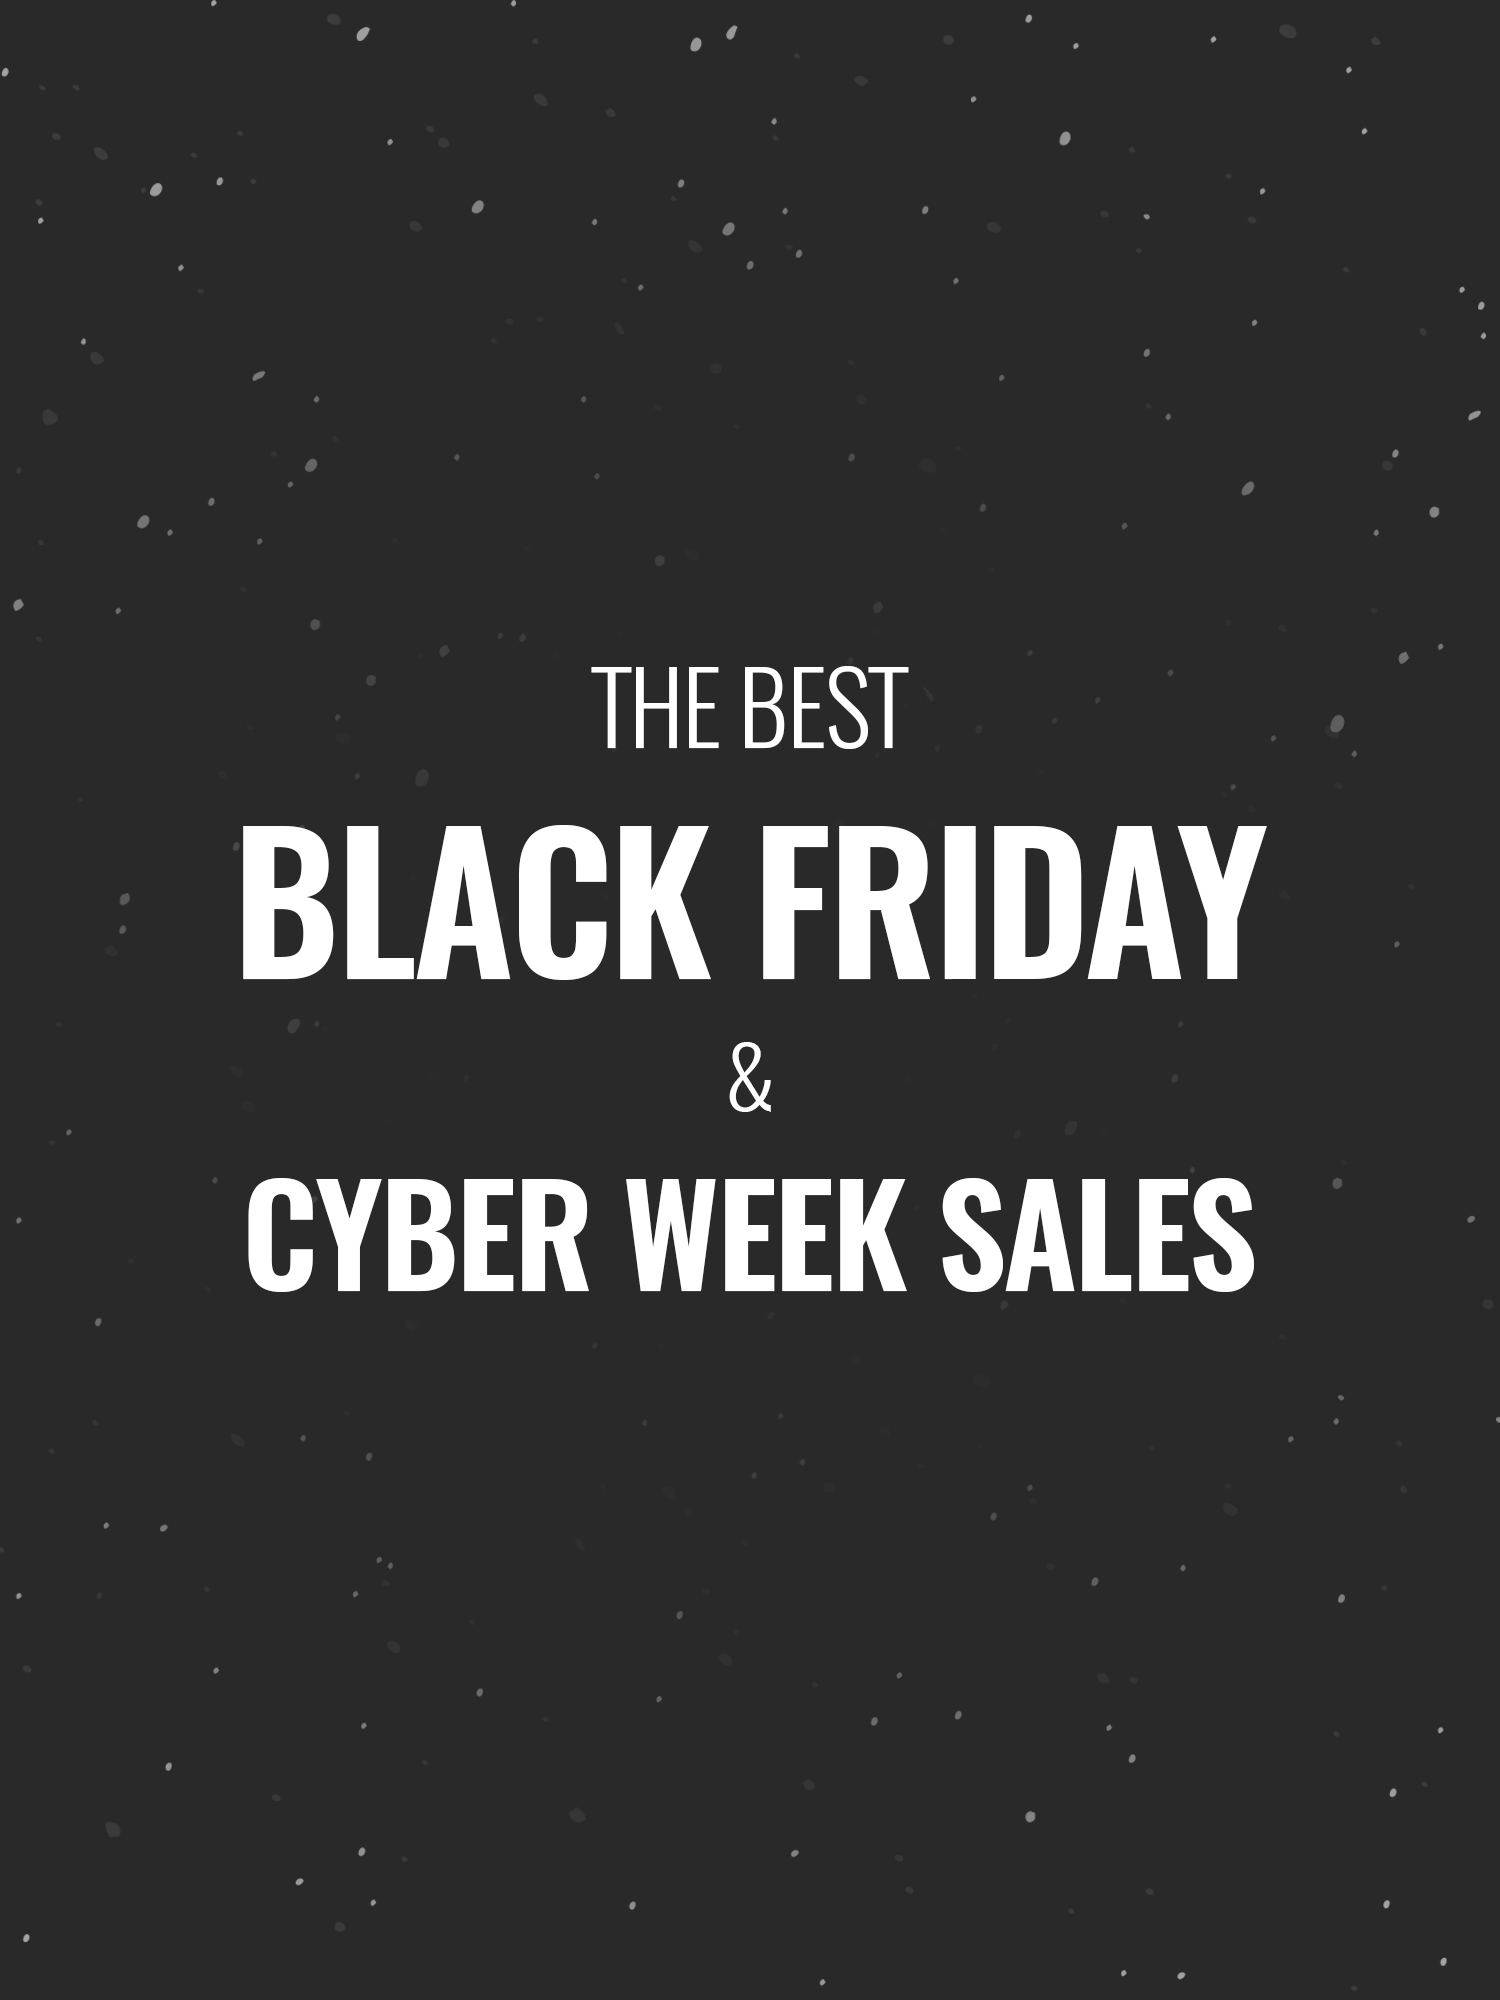 Black Week Sale The Best 2018 Black Friday And Cyber Week Sales Hey It S Julay